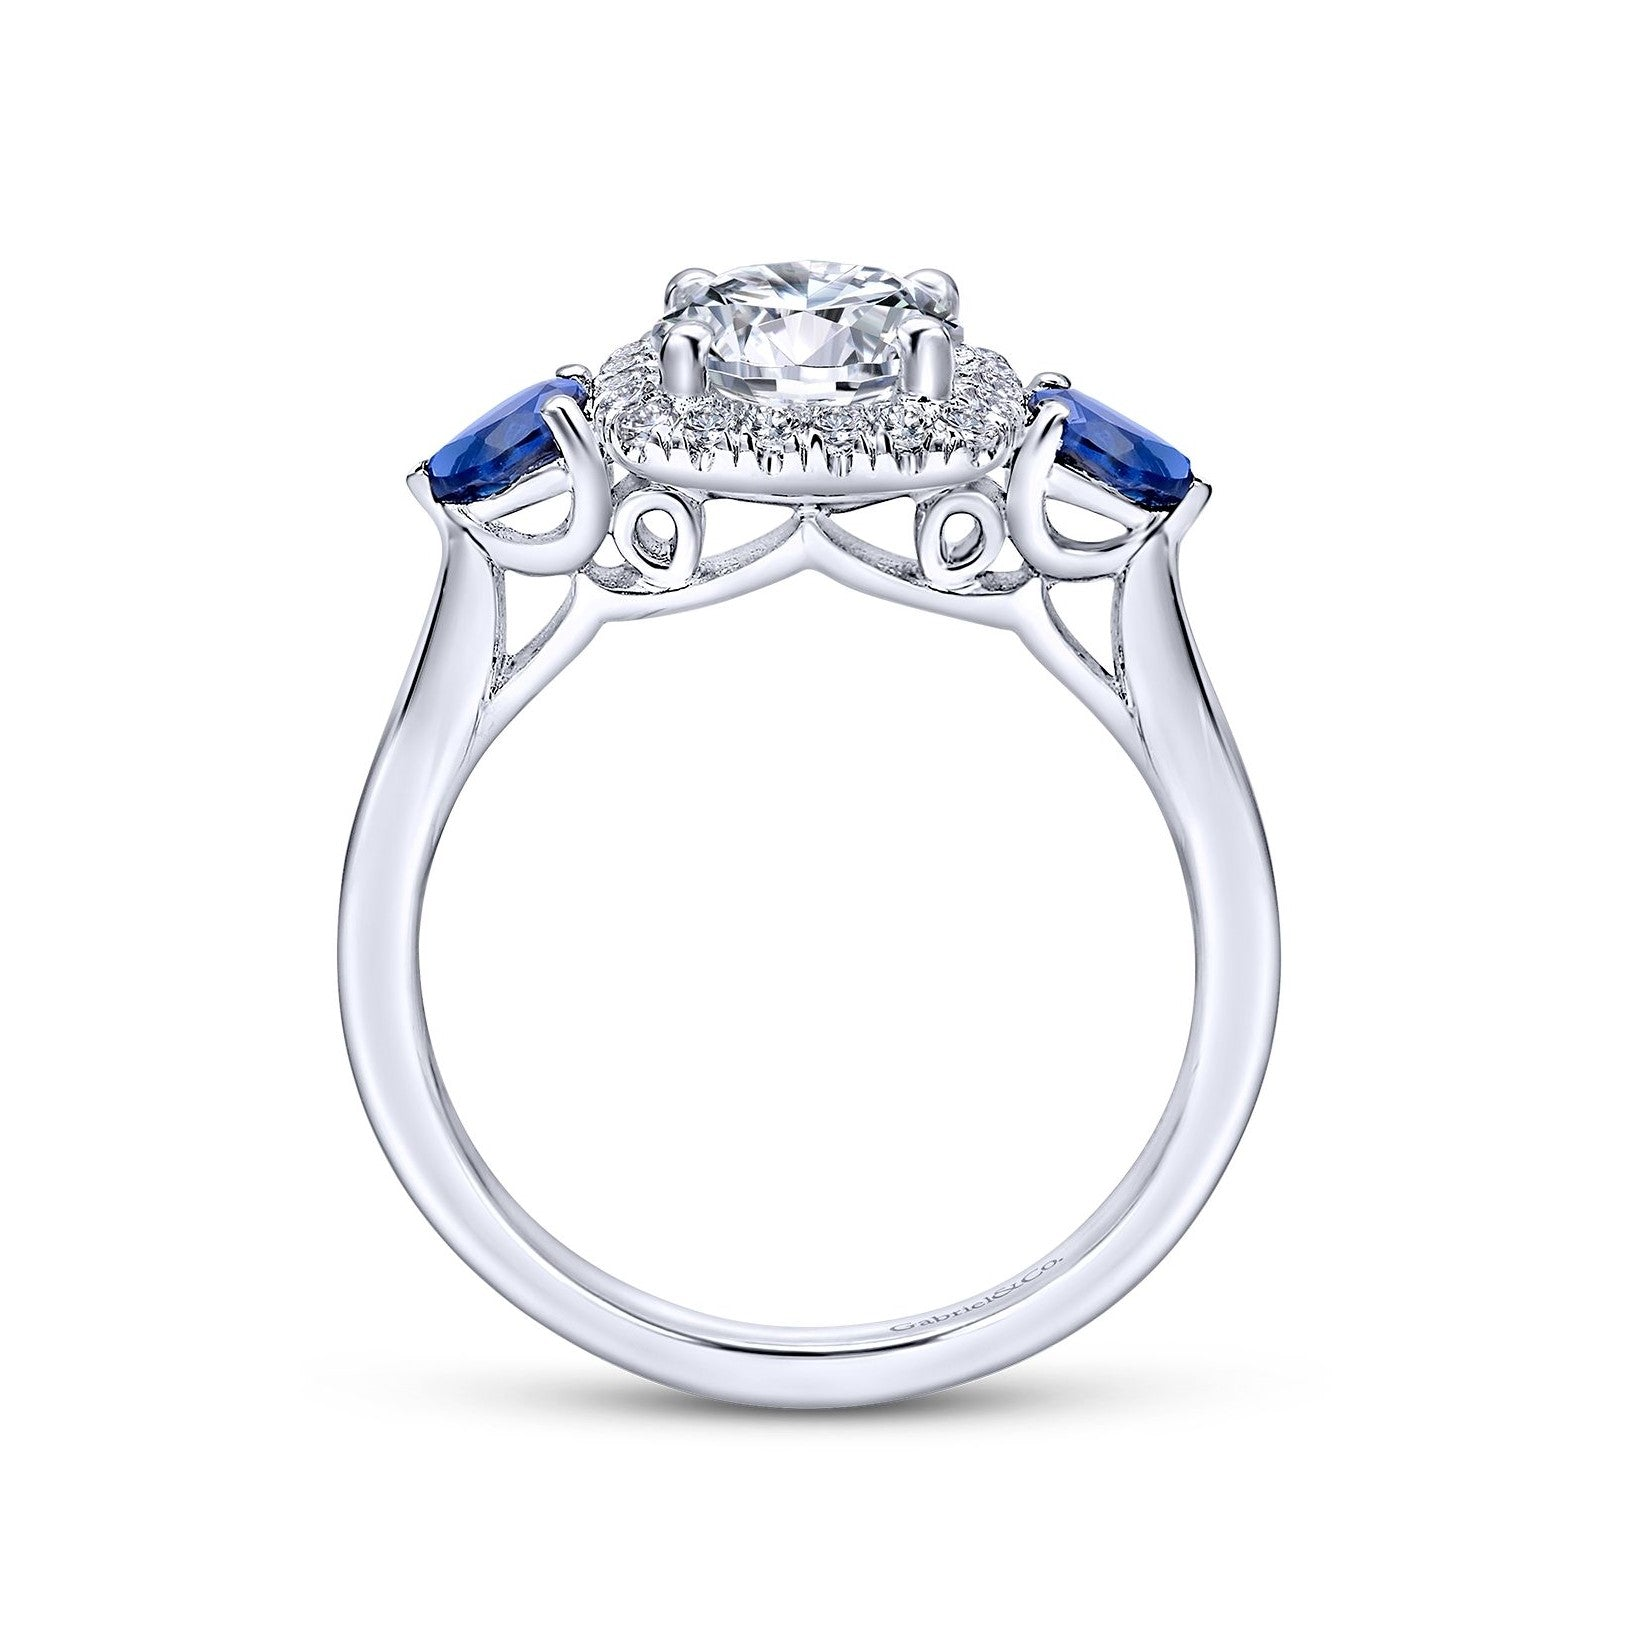 Gabriel & Co. 14k White Gold Round Diamond Cushion Halo & Pear Shaped Blue Sapphires Engagement Ring